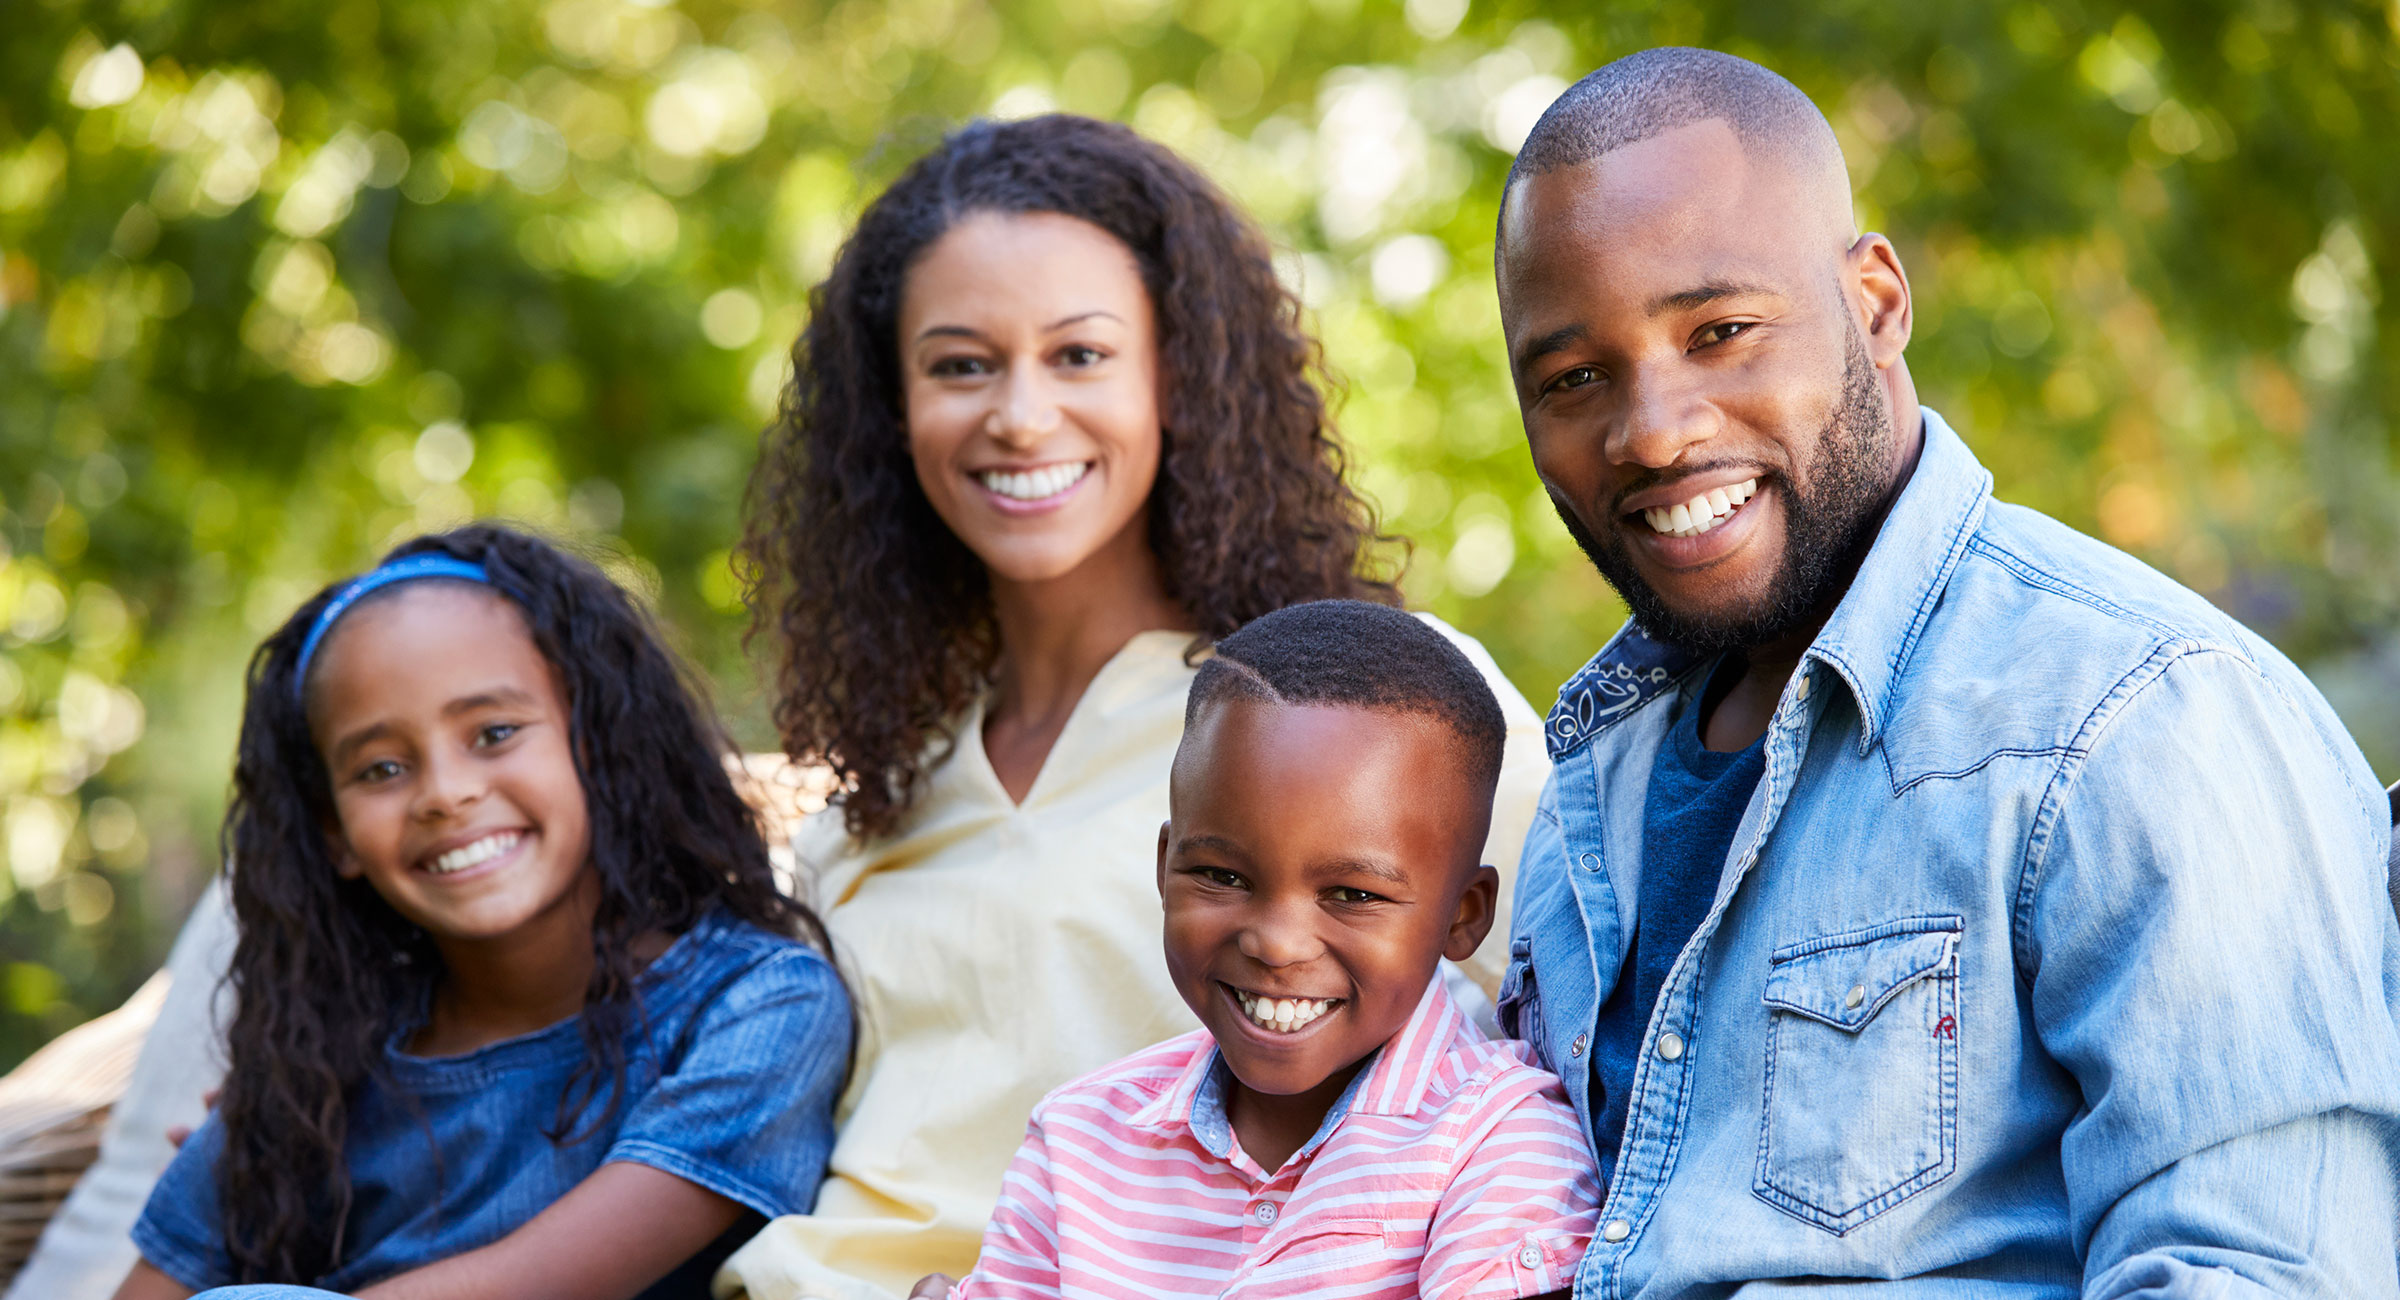 Puget-Sound-Family-Services-Counseling-in-Tacoma